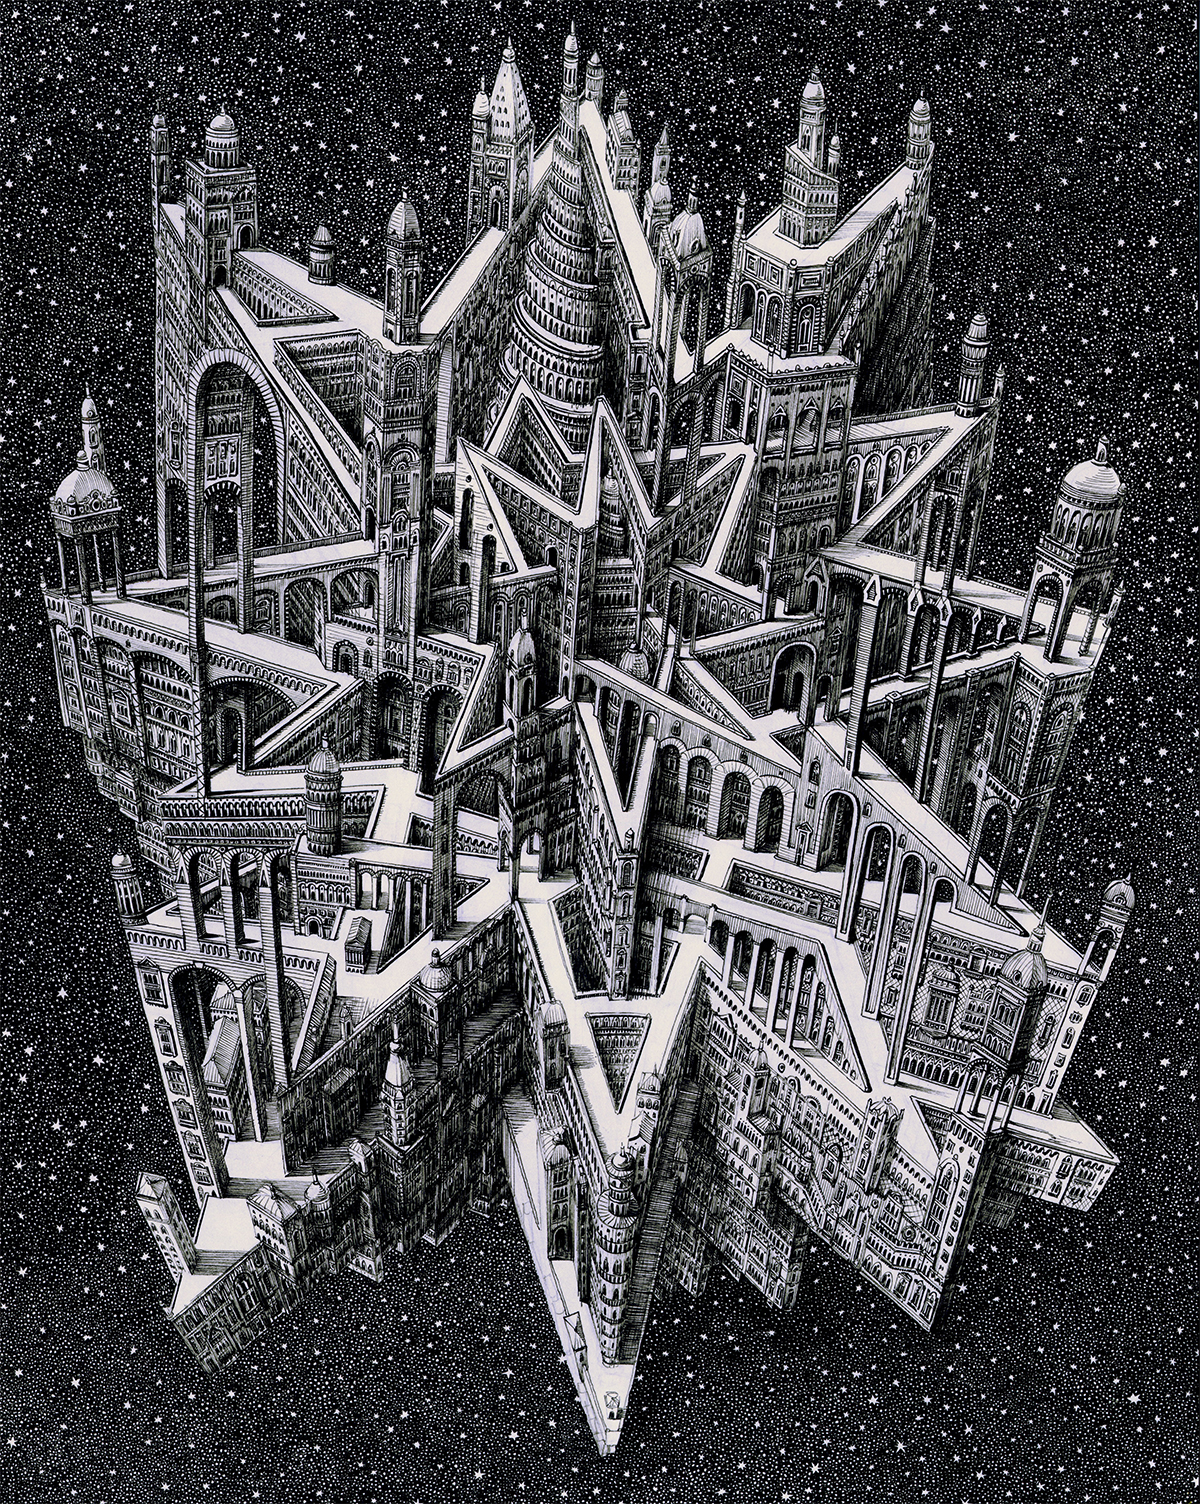 Impossible Cityscapes by Benjamin Sack Draw Inspiration From Cartography and Musical Compositions | Colossal